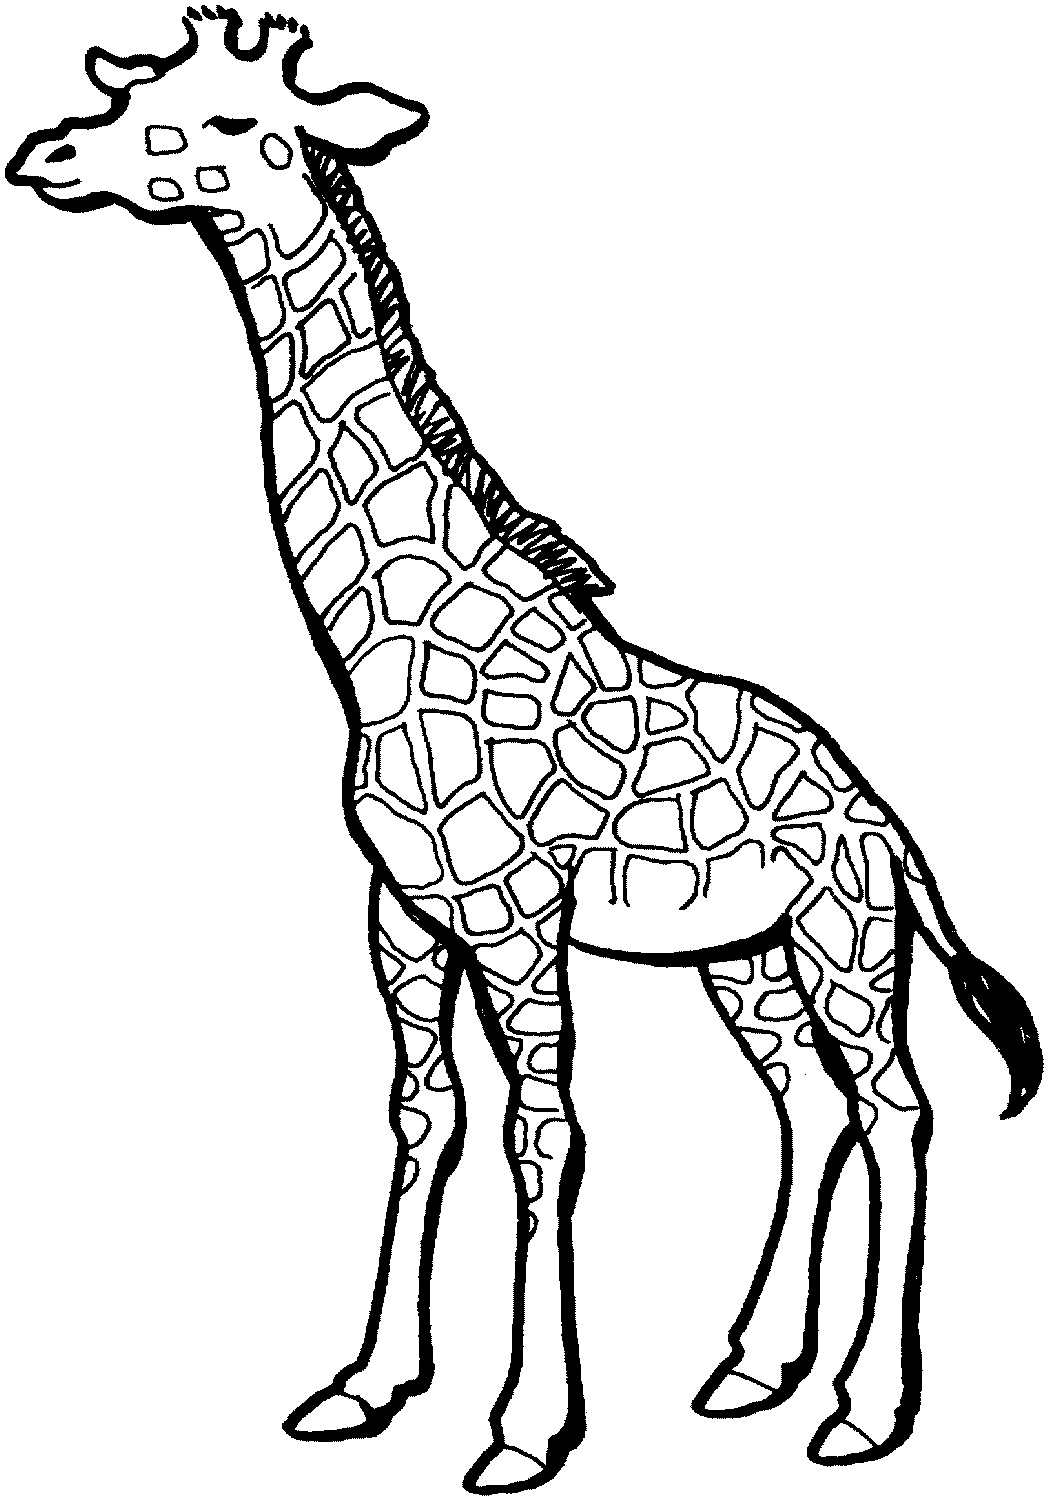 Clip Art Cartoon Giraffe Coloring Pages free printable giraffe coloring pages for kids images